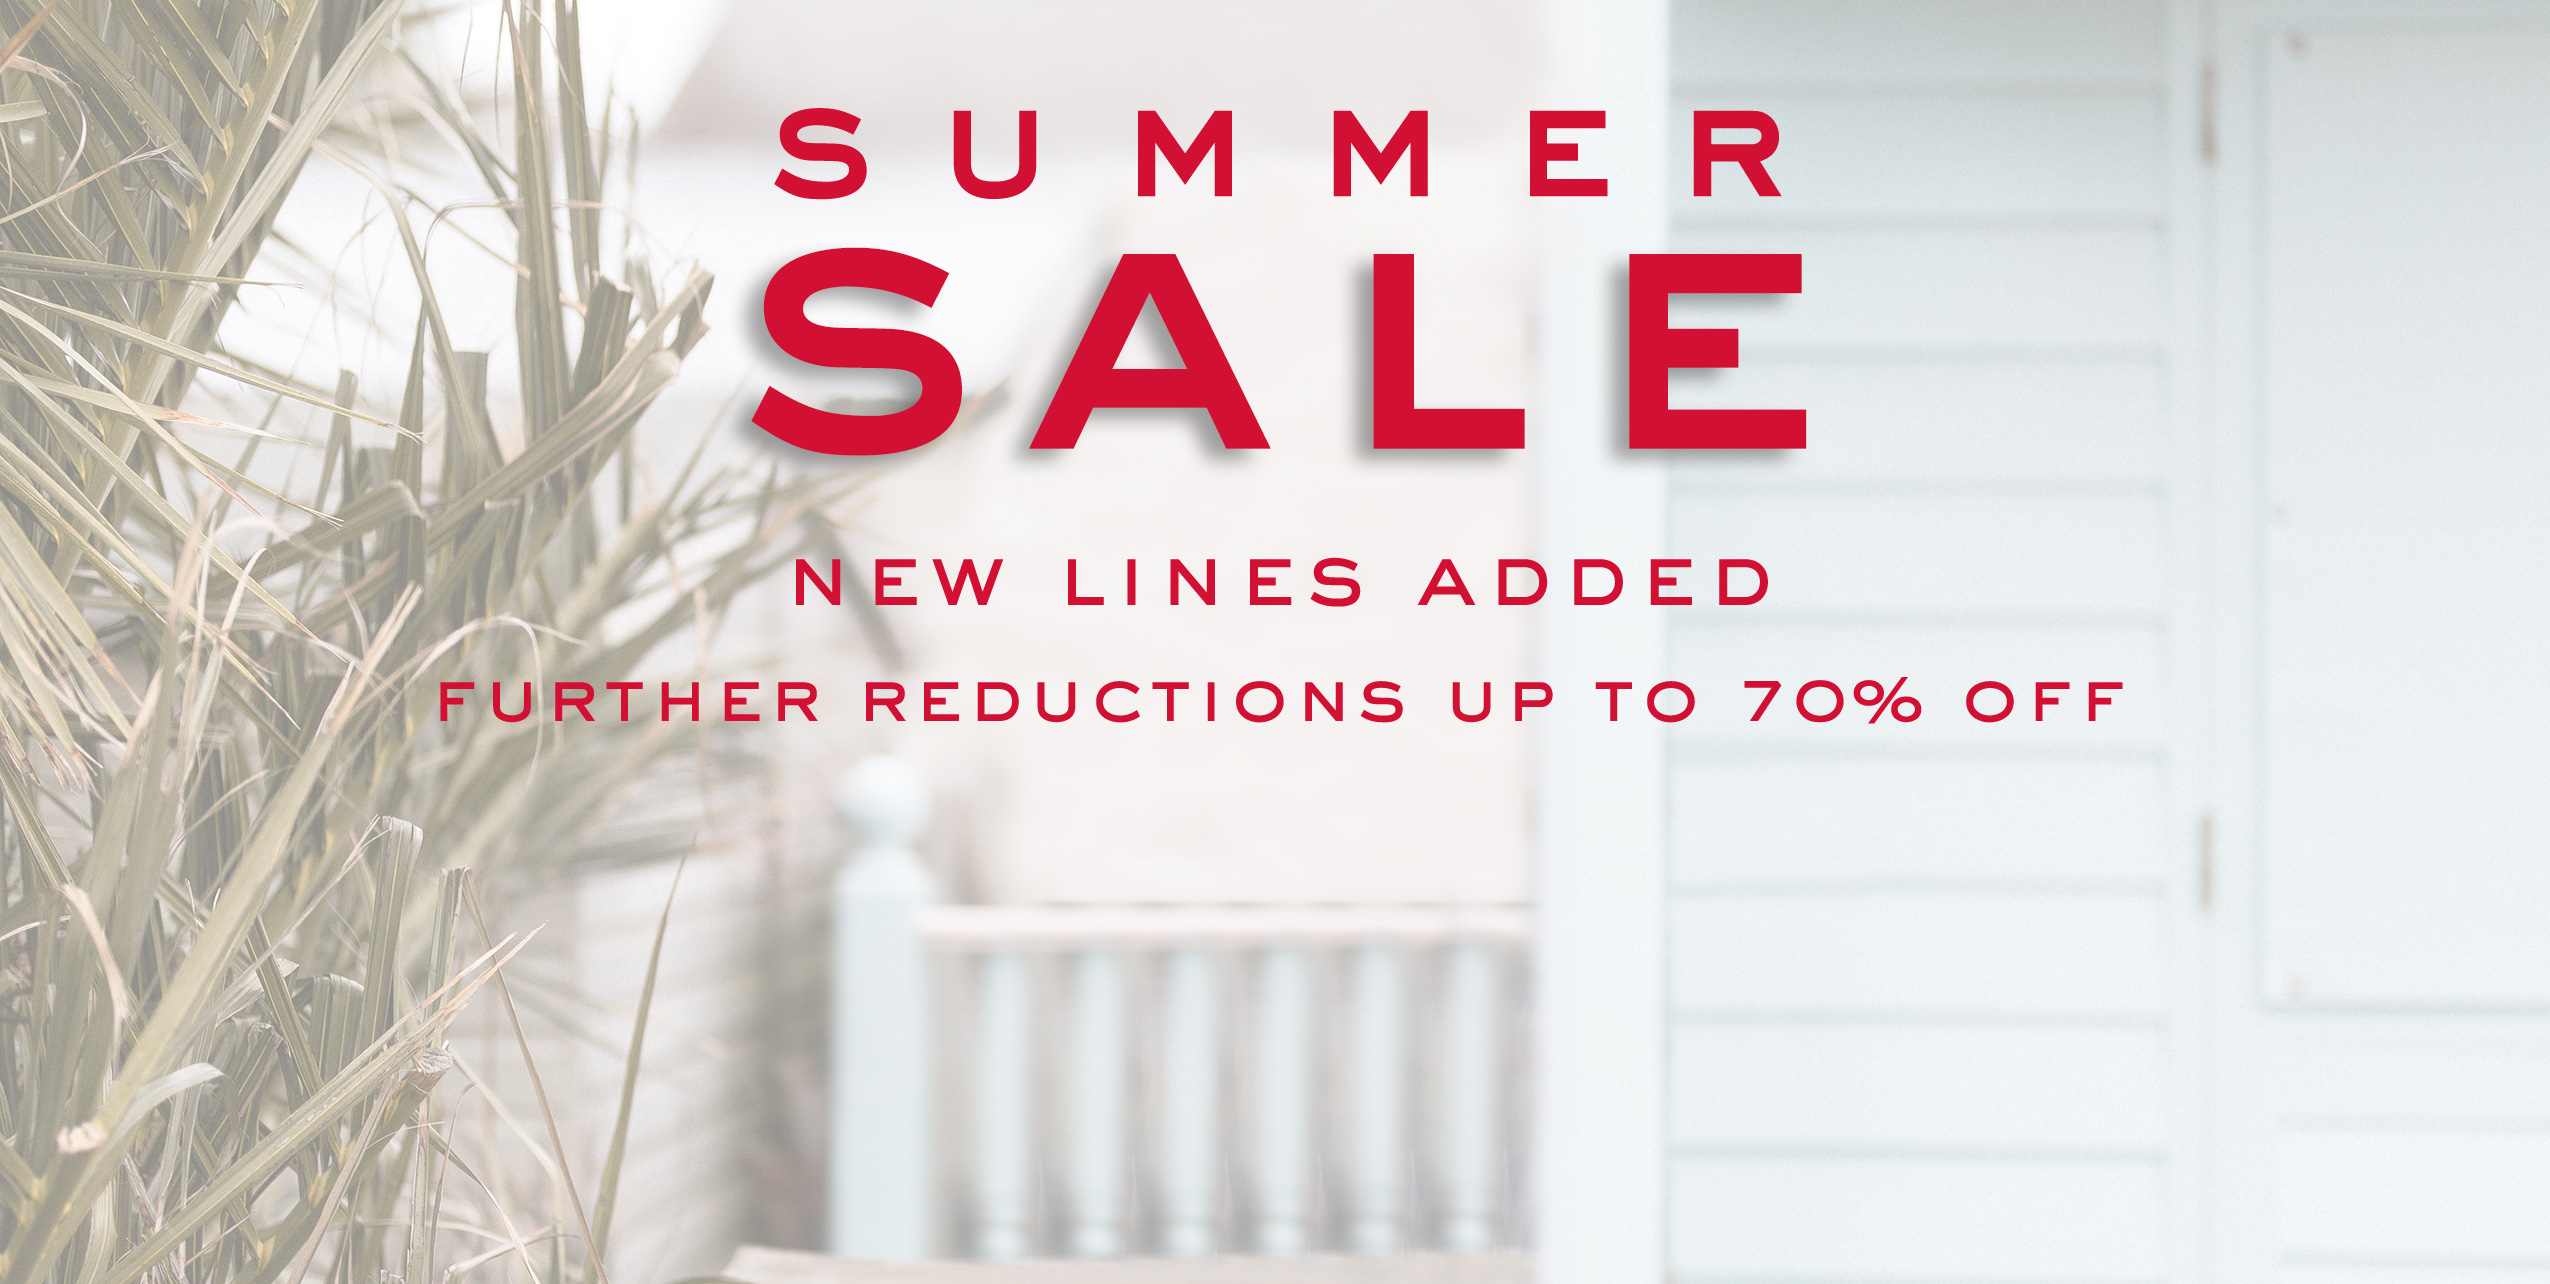 Summer Sale: New Lines Added